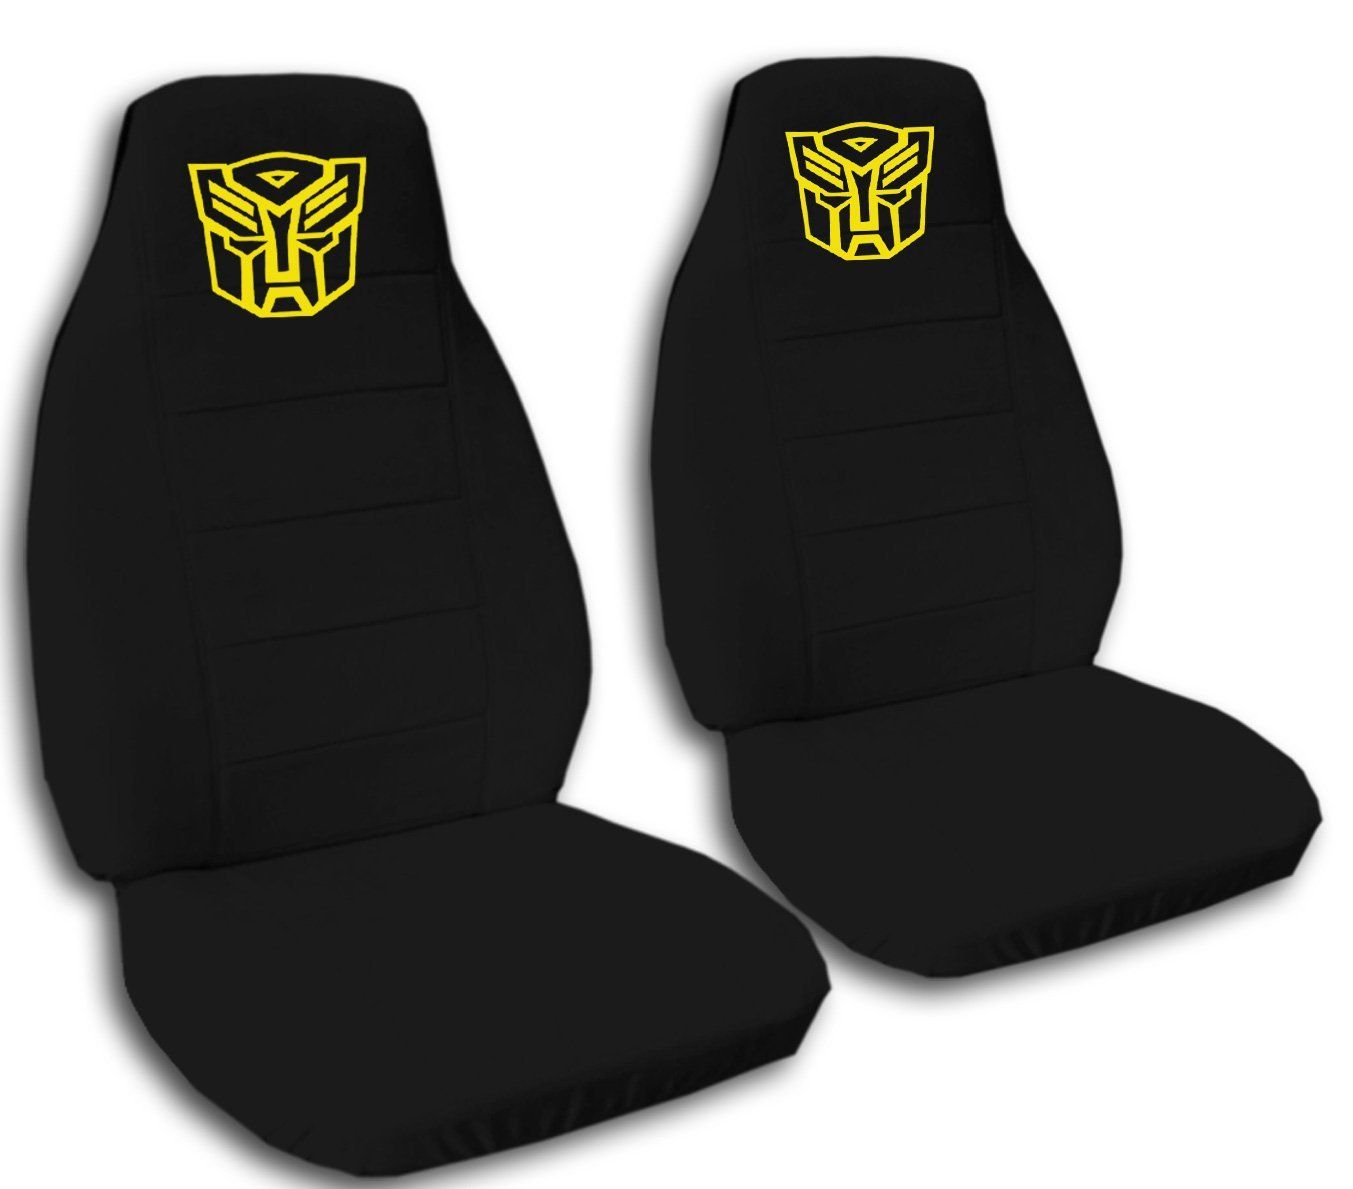 Transformers Car Seat Cover Accessories | Car Accessories ...